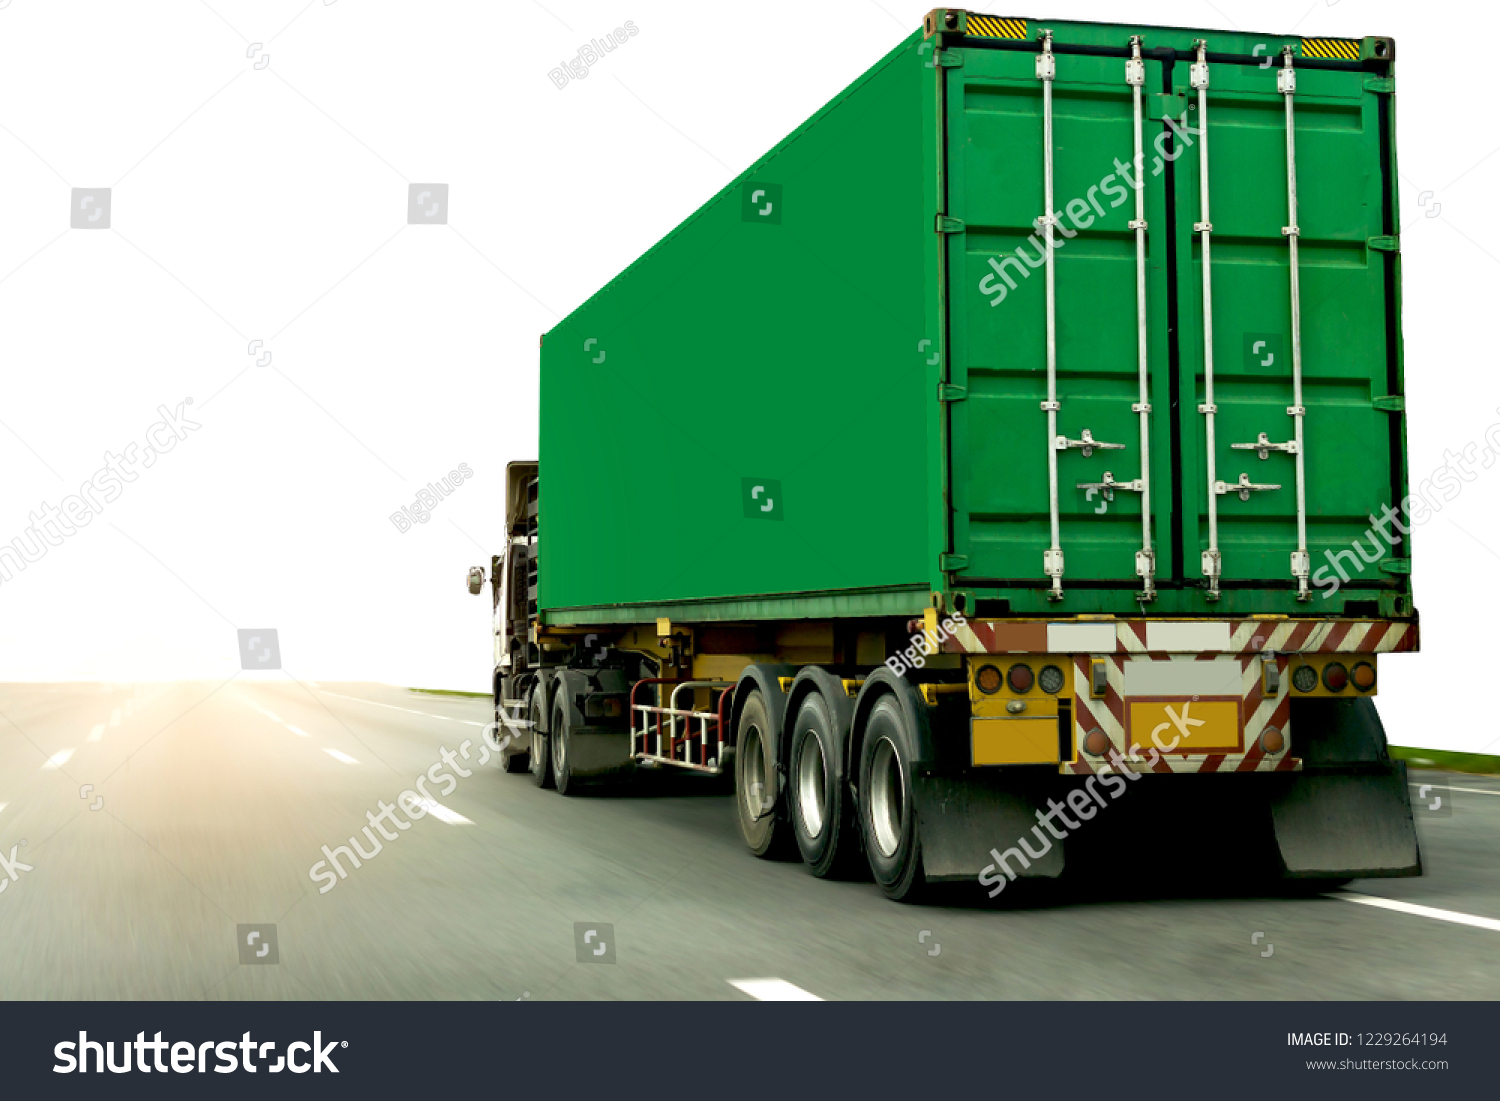 Truck on highway road with green container, transportation concept.,import,export logistic industrial Transporting Land transport on the expressway #1229264194